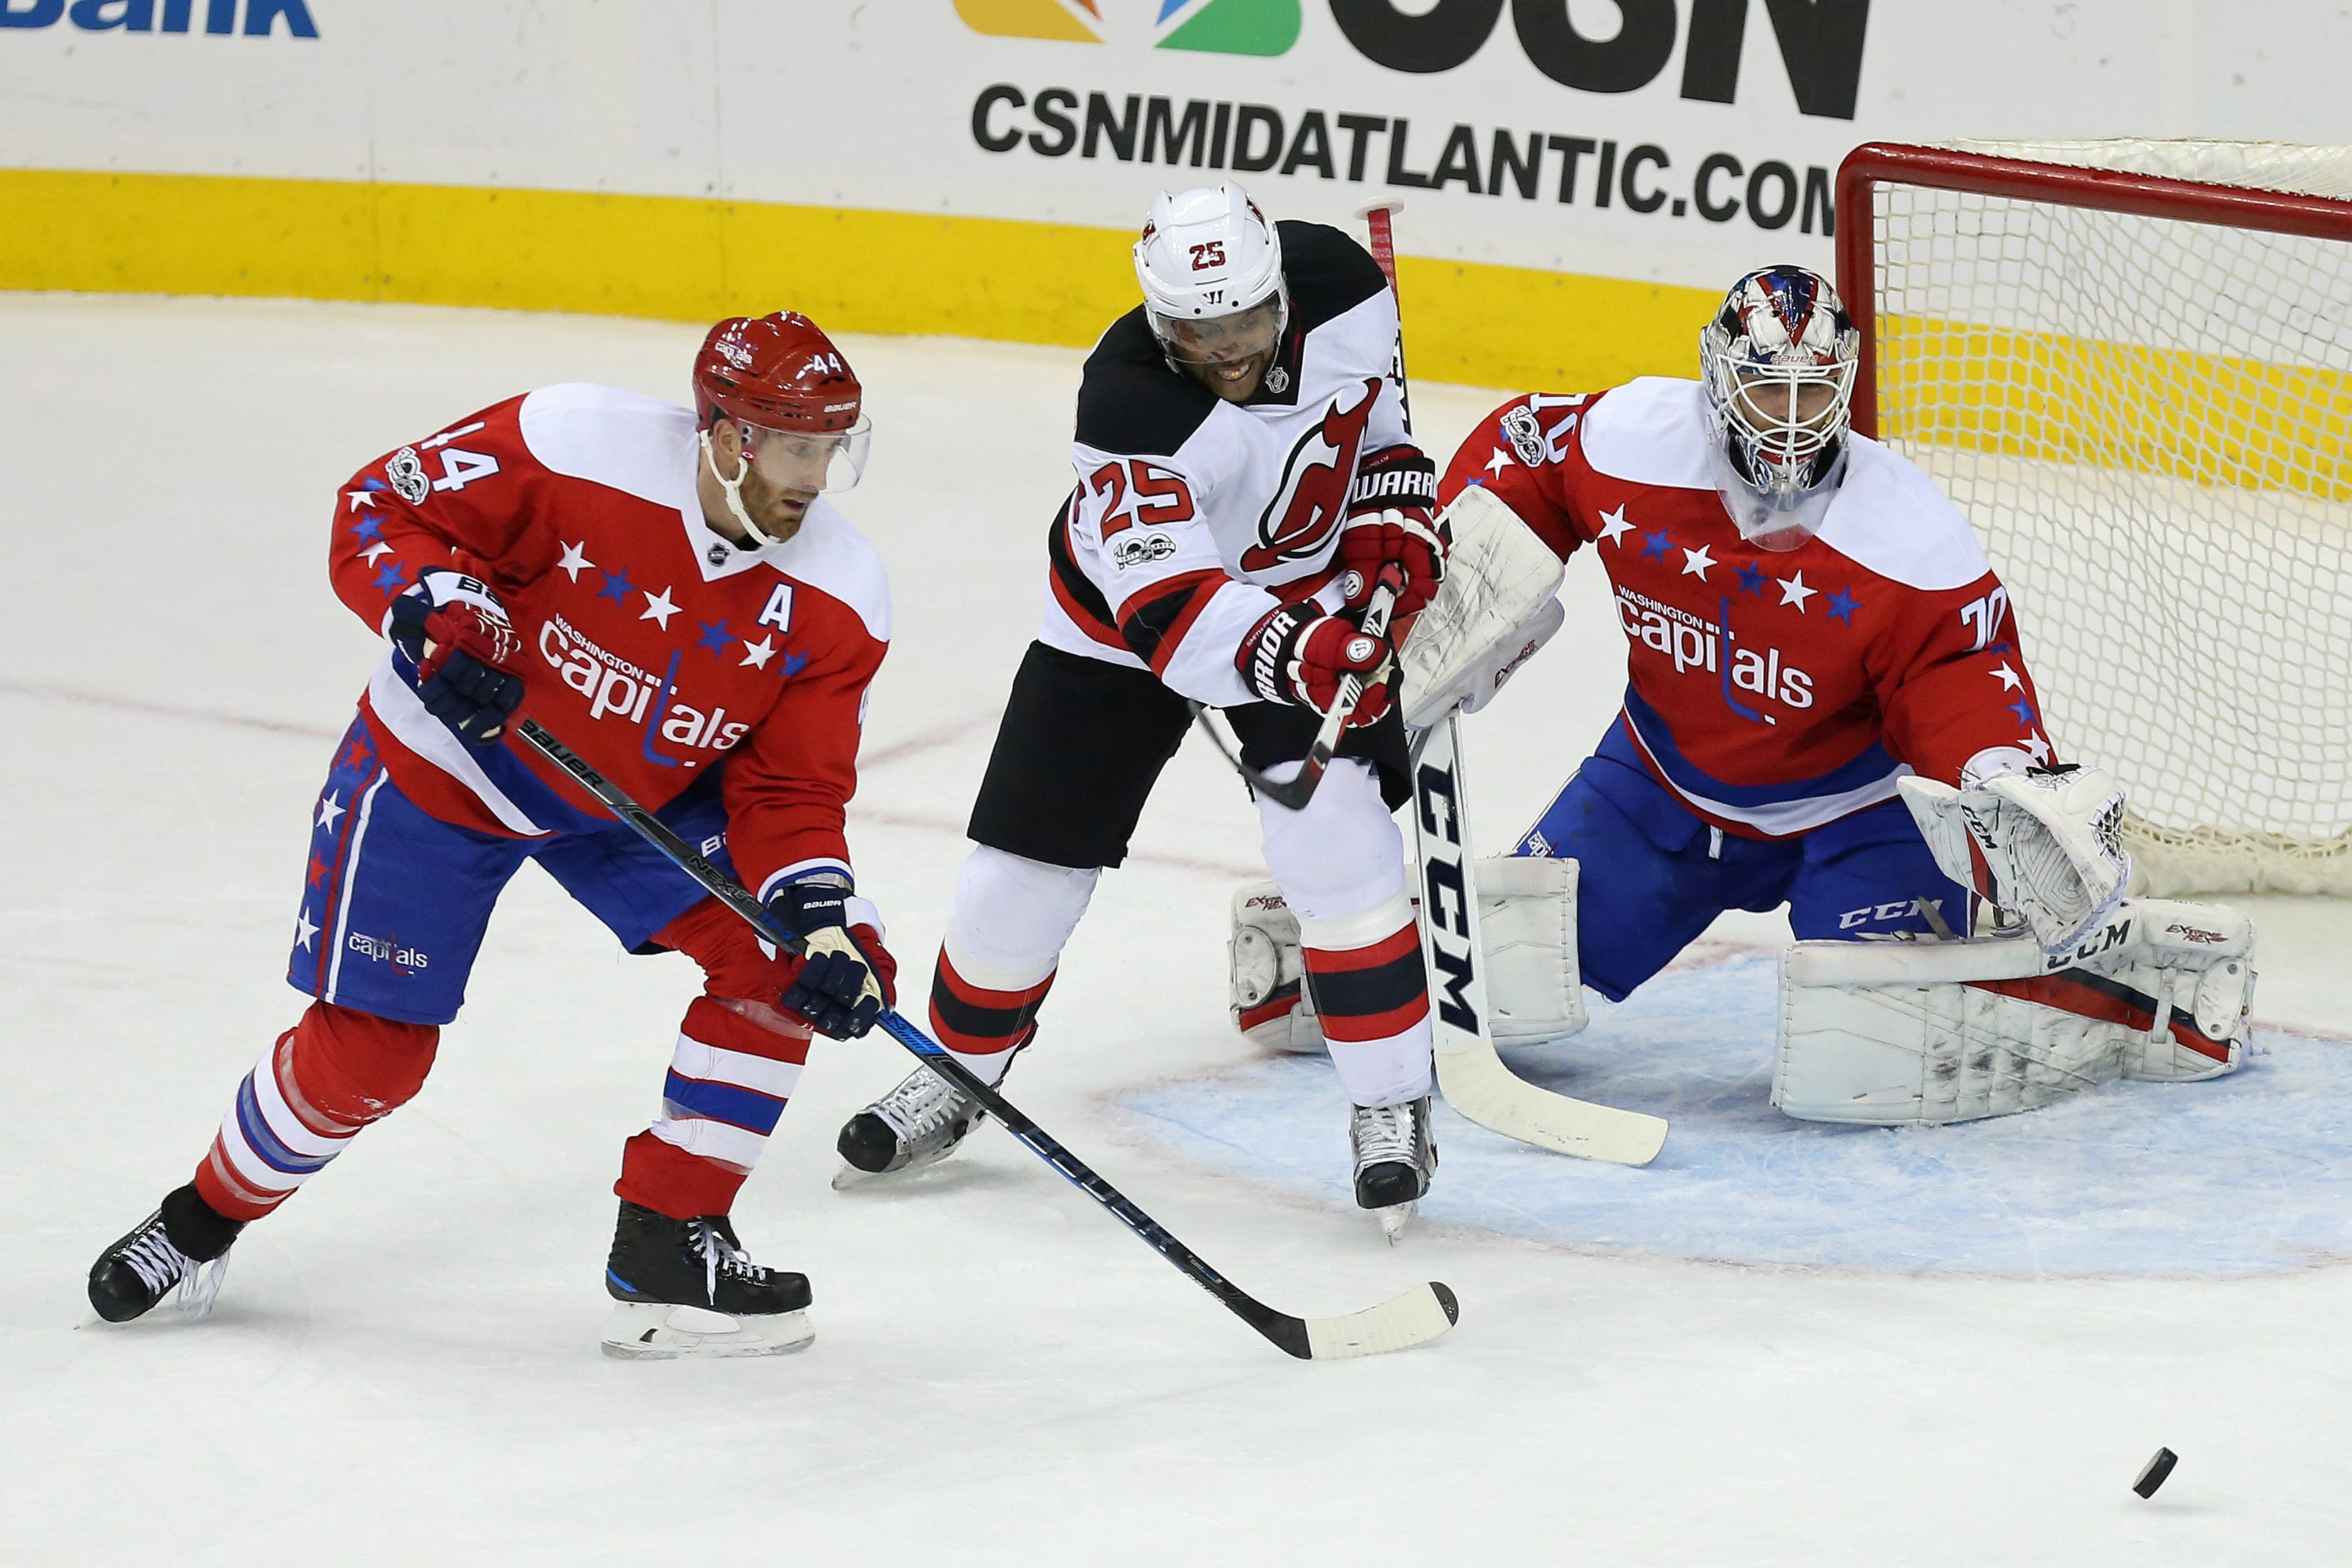 image relating to Washington Capitals Printable Schedule named Capitals blank Devils, 1-0